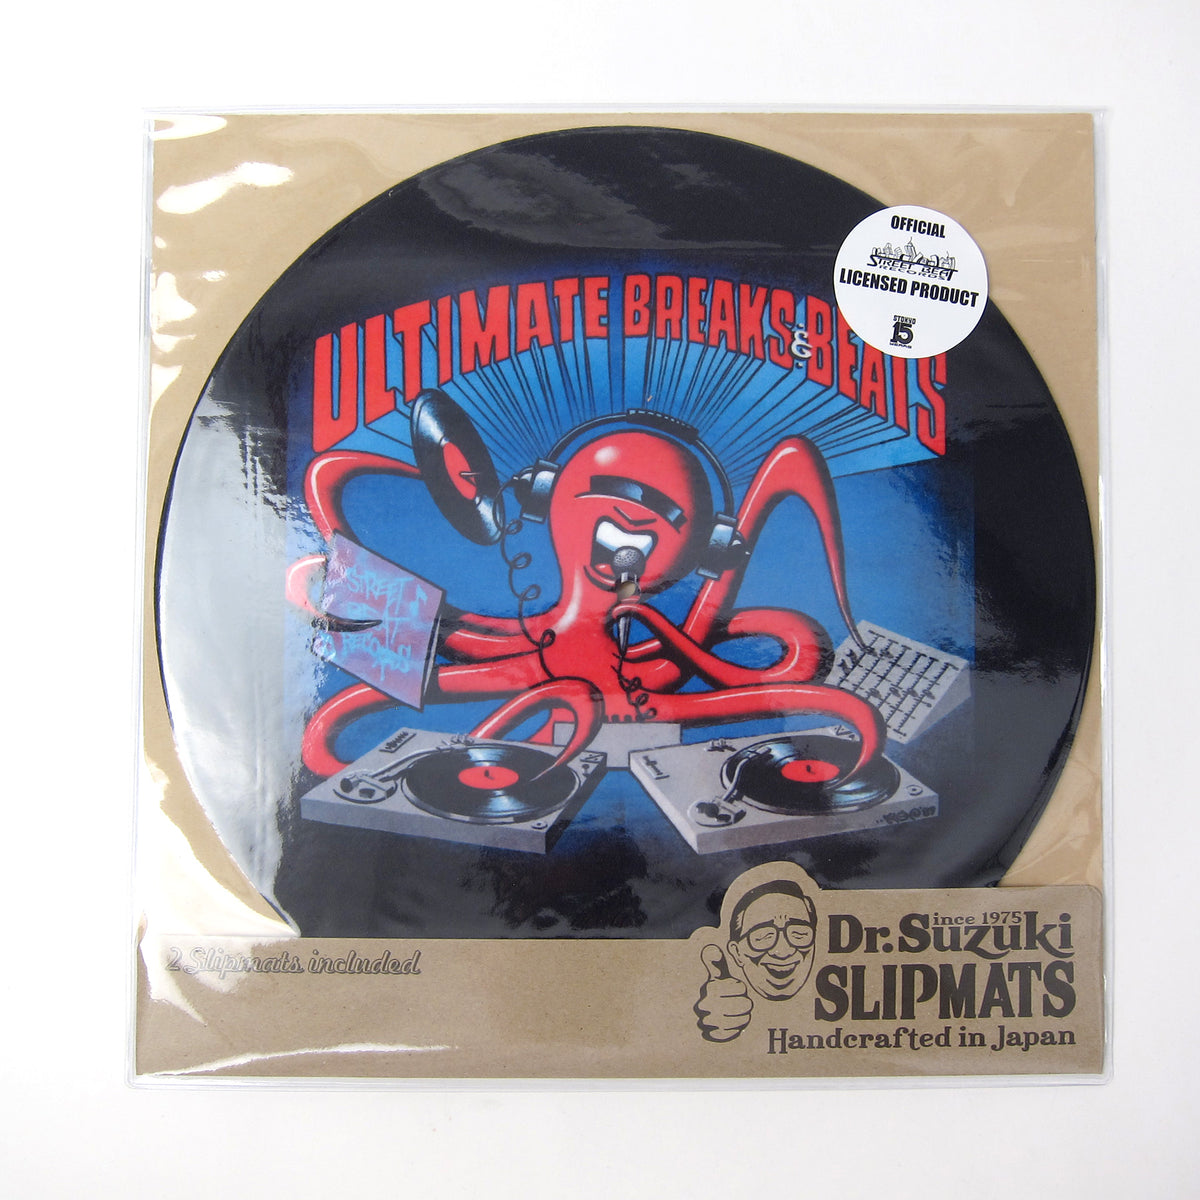 "Stokyo: Dr. Suzuki x Street Beat Records (Ultimate Breaks & Beats) 12"" Slipmats"